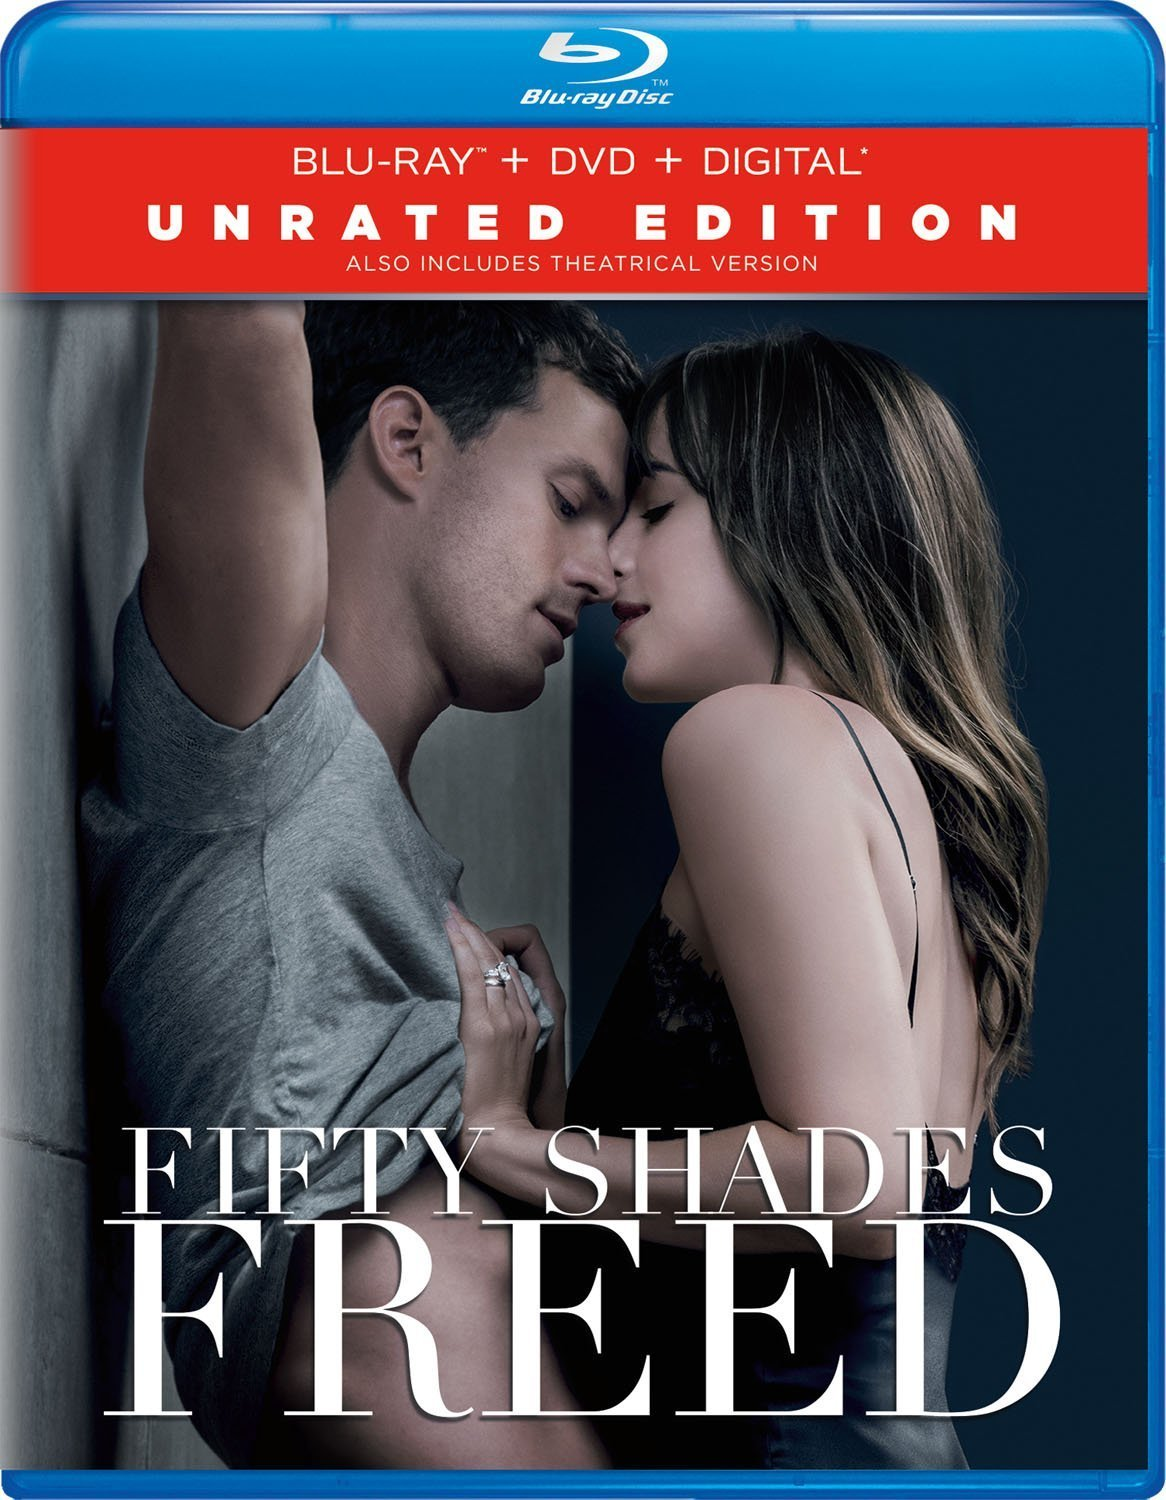 fifty shades freed free download pdf file